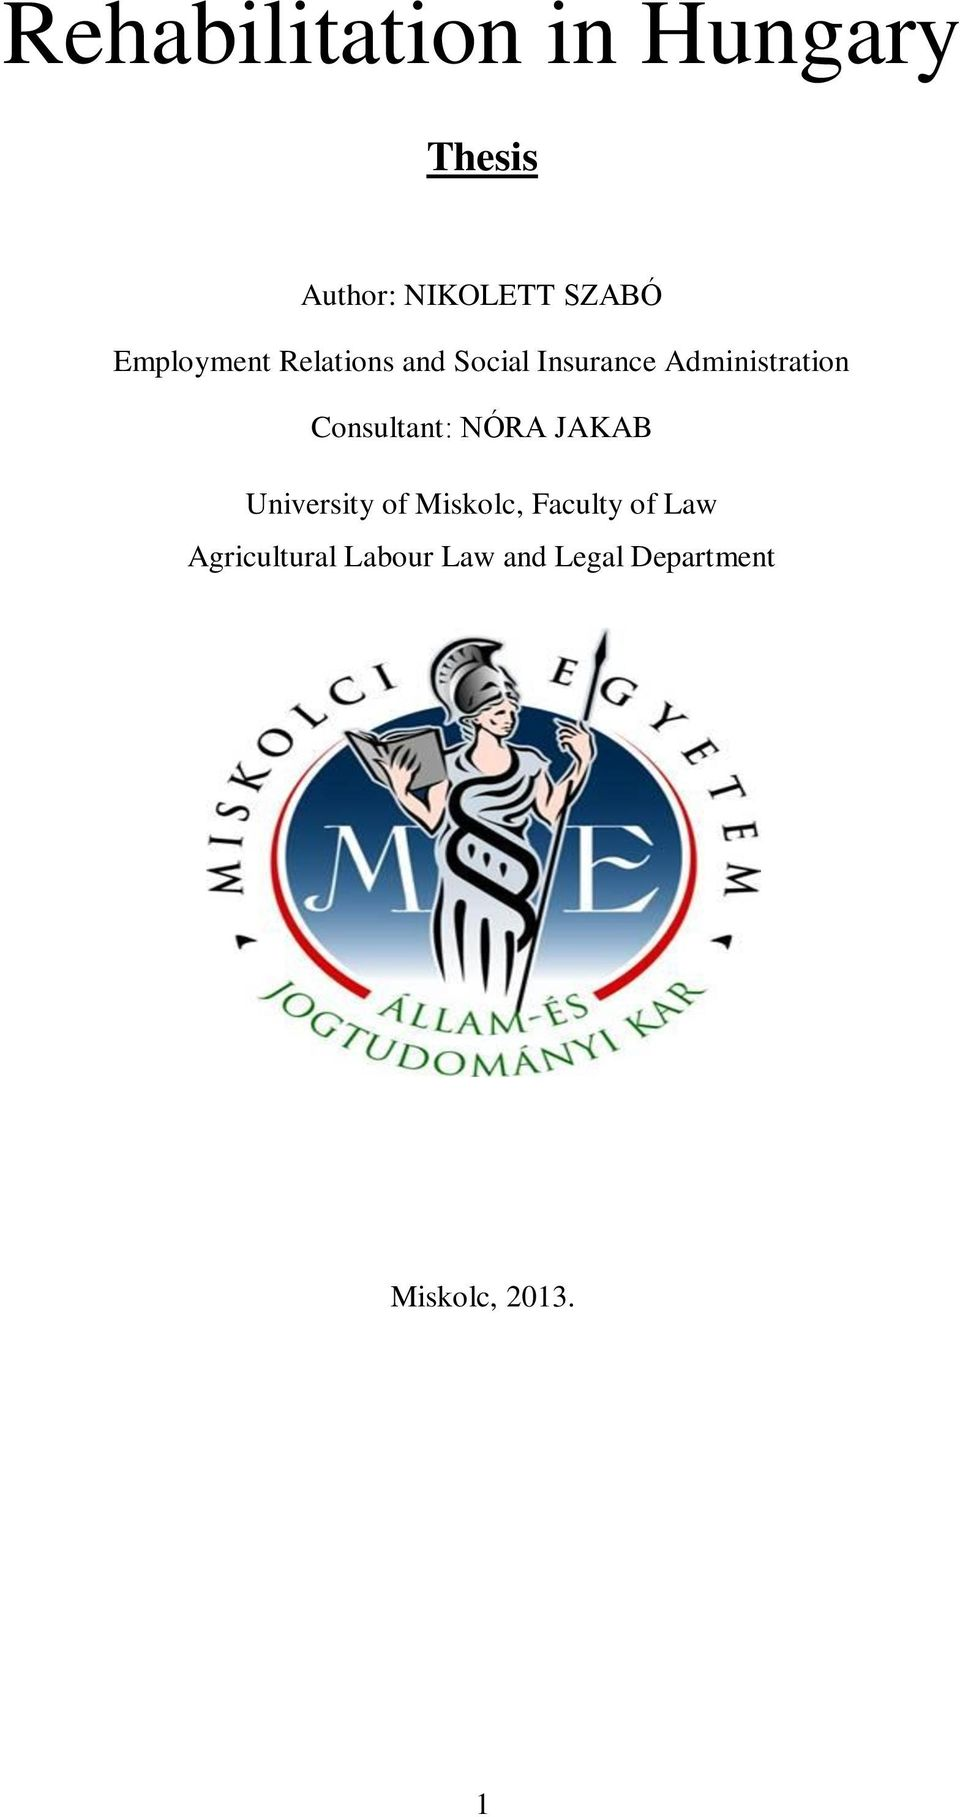 Consultant: NÓRA JAKAB University of Miskolc, Faculty of